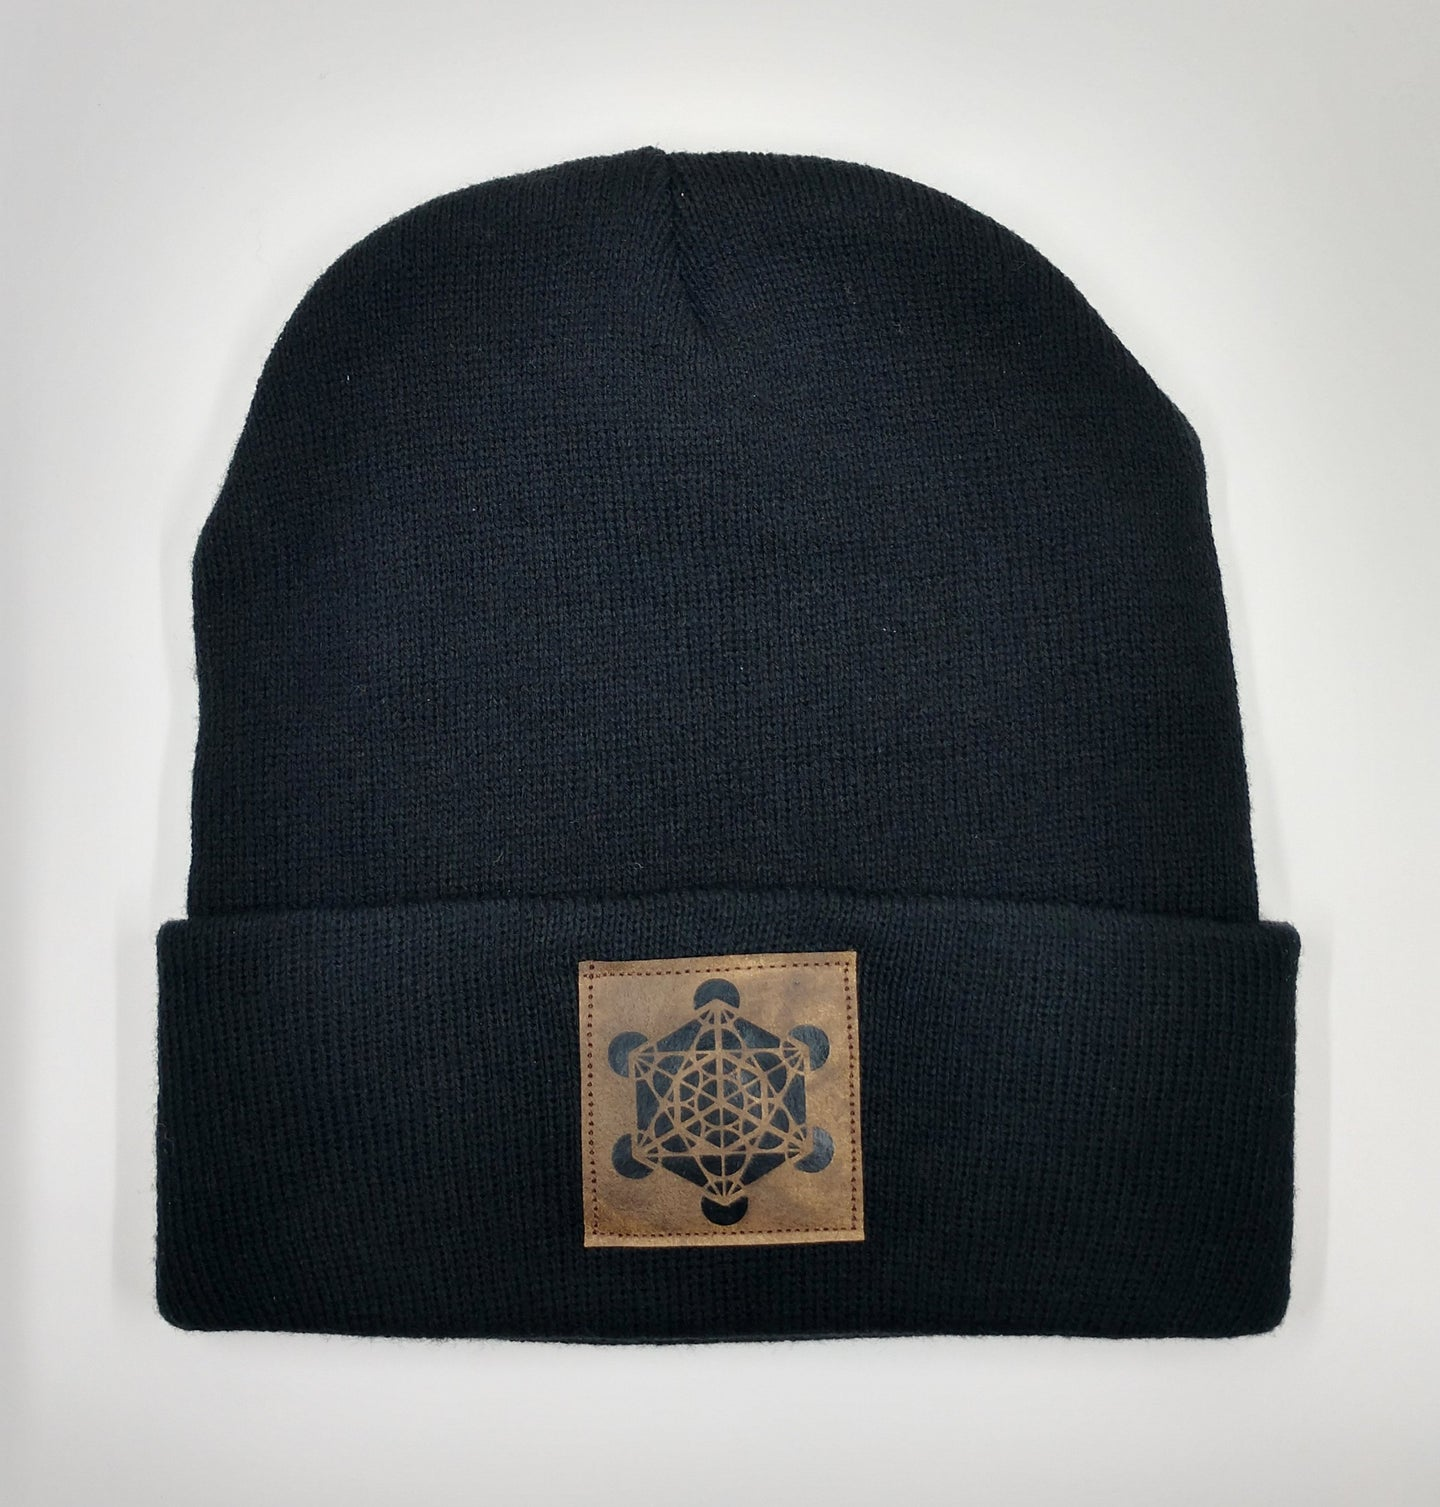 Black Buddha Beanie with handmade Metatron's cube patch over your Third Eye